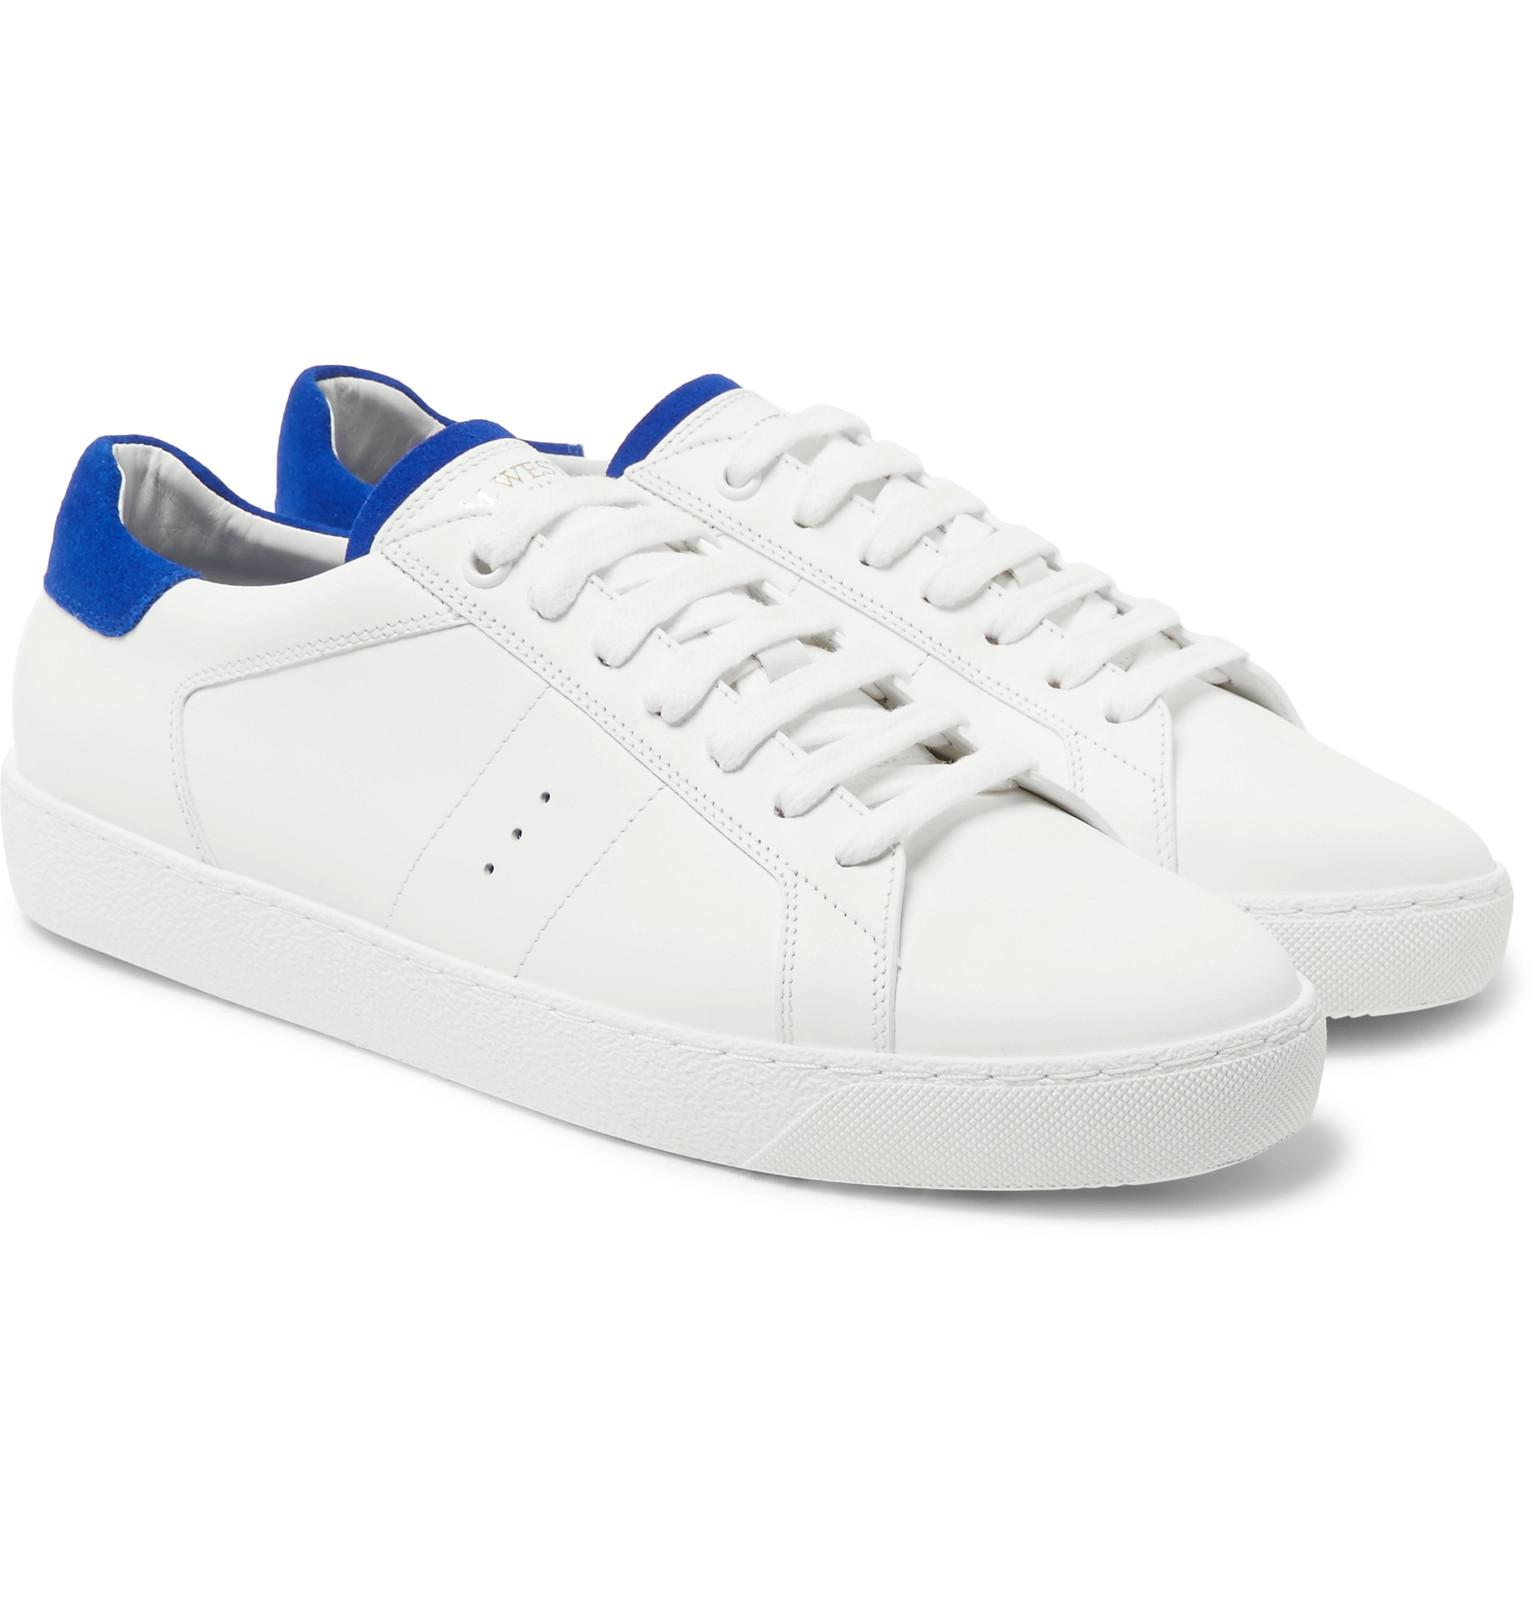 J.M. Weston Suede-Trimmed Leather Sneakers cheap good selling buy cheap wide range of best for sale top quality online nZgnVsdJ